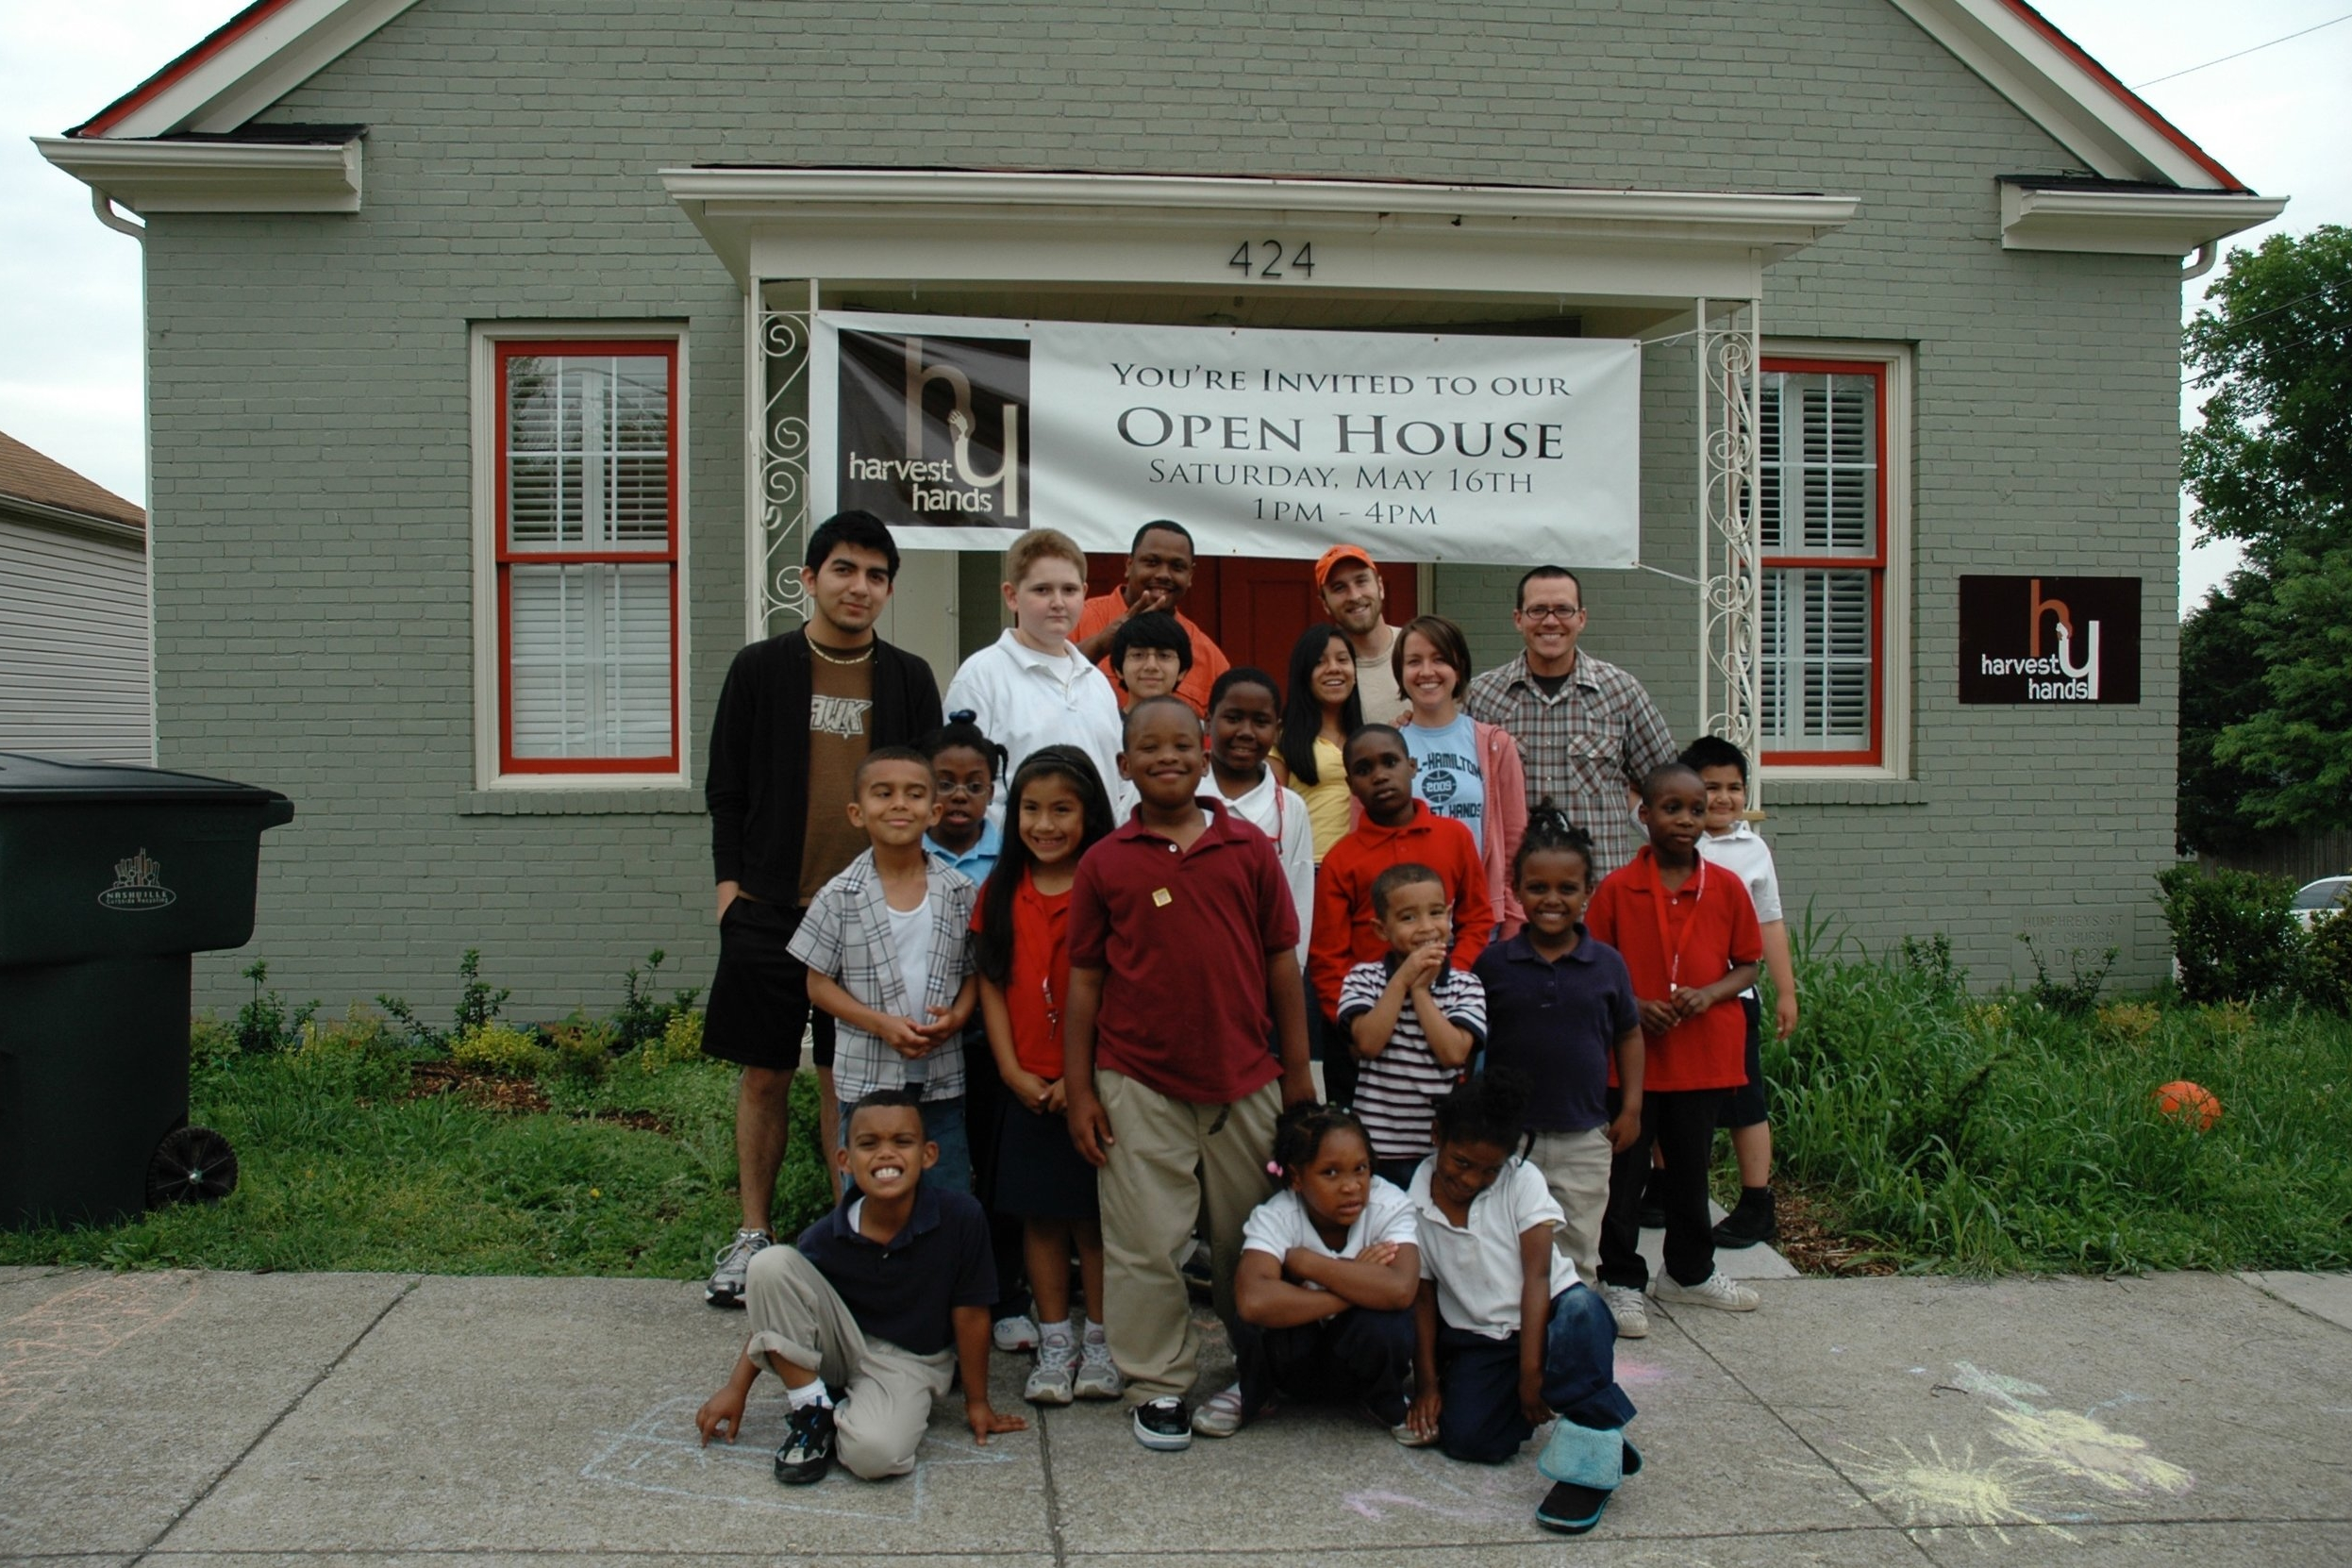 2009  | Renovated the Humphreys Street United Methodist Church to run programming after outgrowing the first Harvest House.